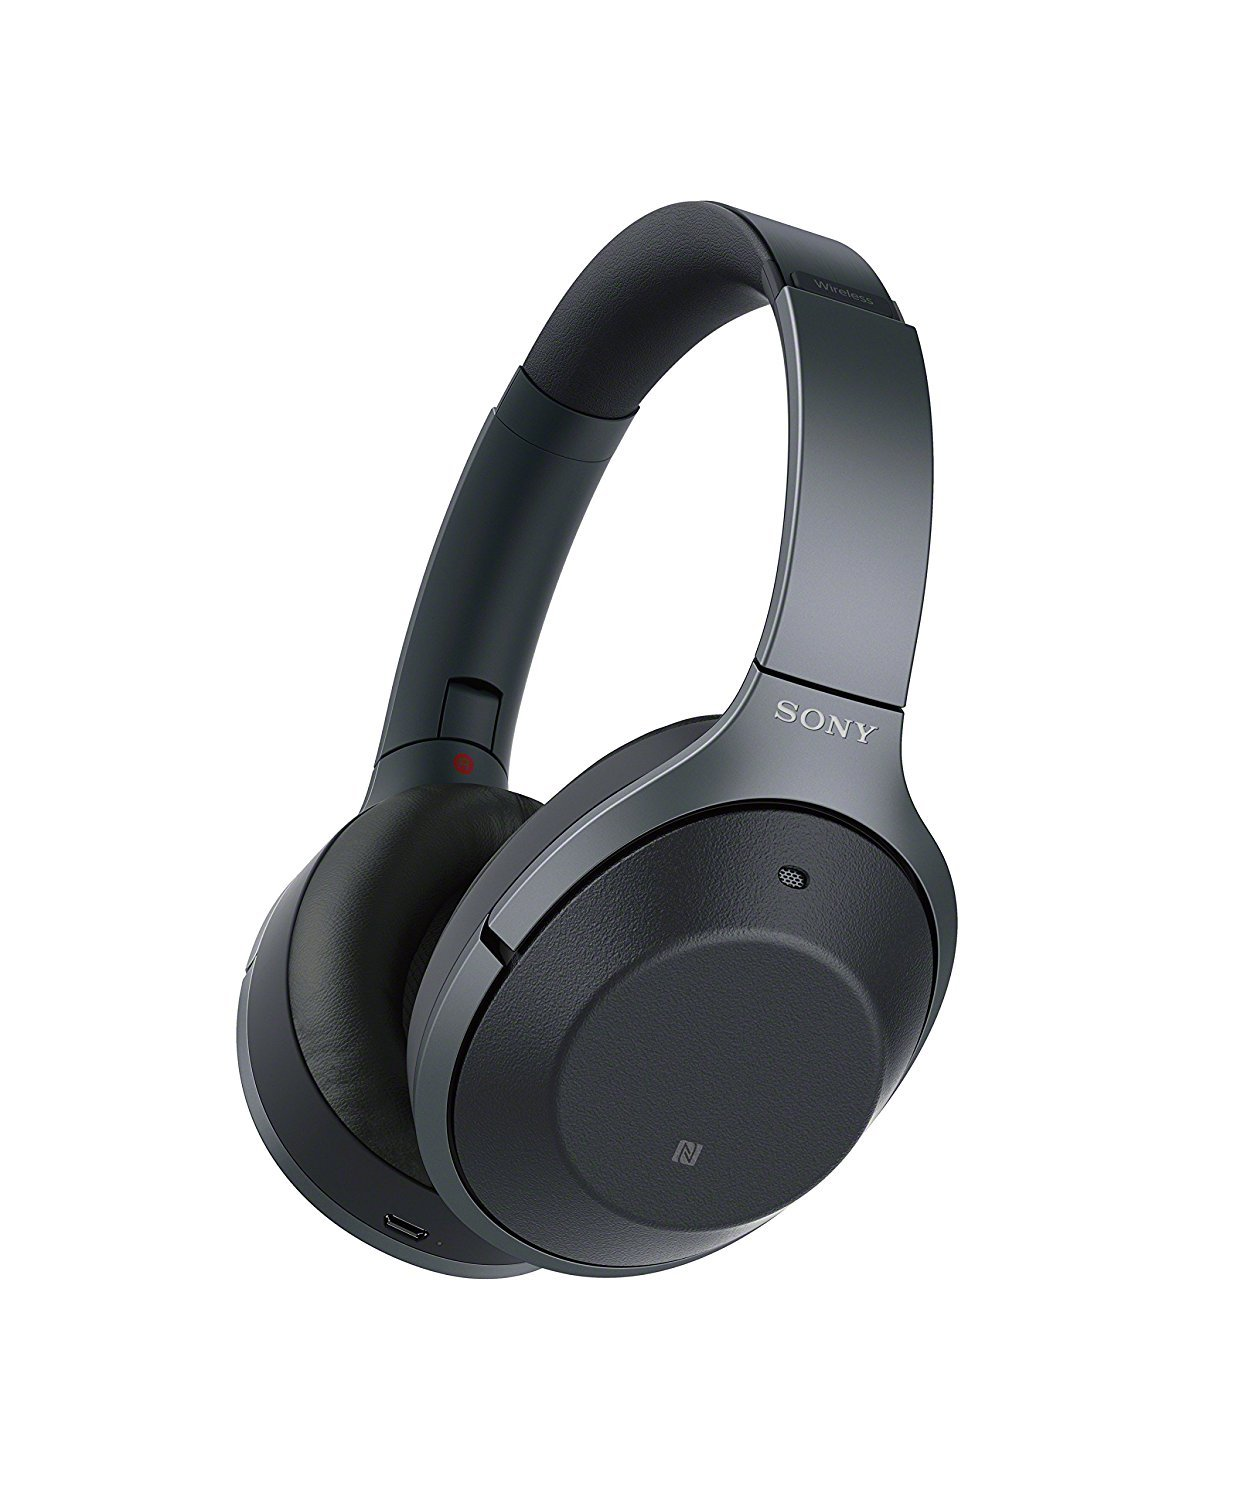 Sony WH-1000XM2 B Wireless Bluetooth Noise Cancelling Hi-Fi Headphones Renewed